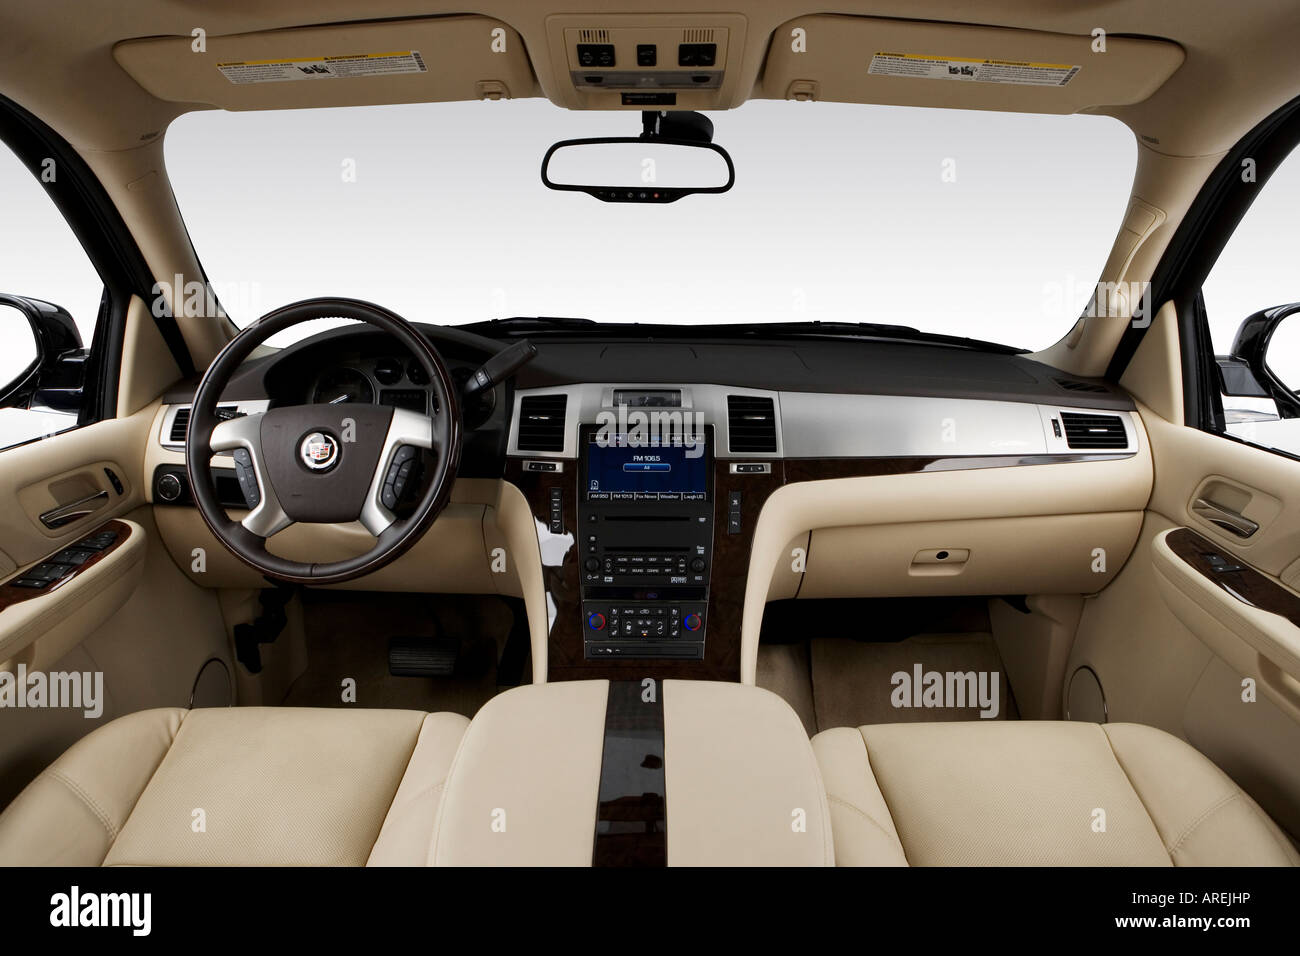 hight resolution of 2007 cadillac escalade esv in black dashboard center console gear shifter view